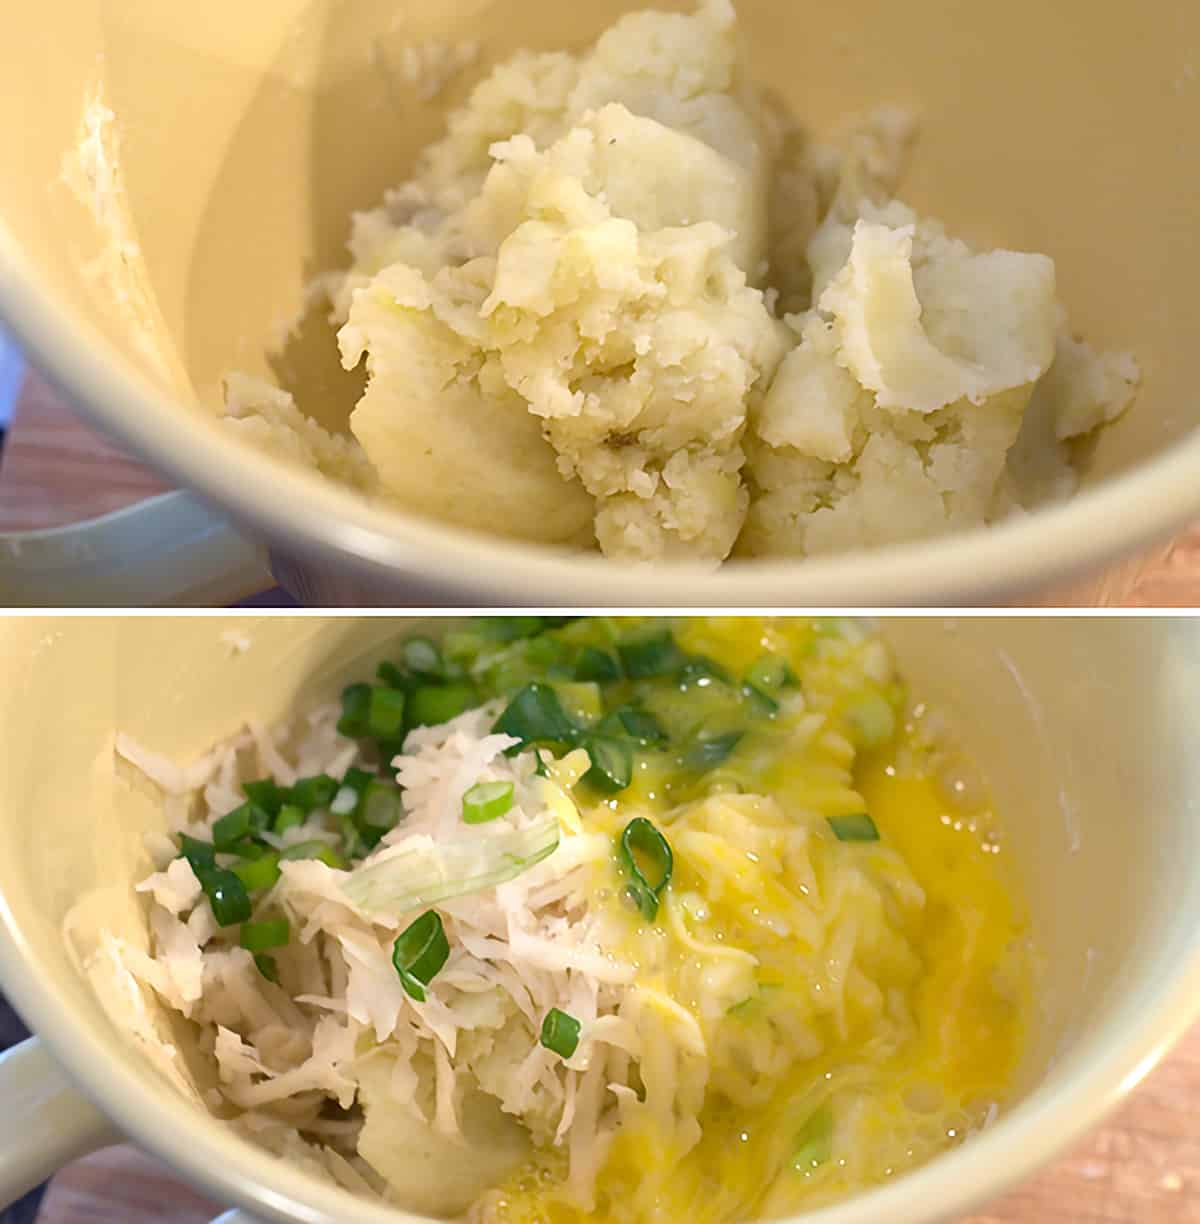 Grated potatoes, mashed potatoes, eggs, and onions in a mixing bowl